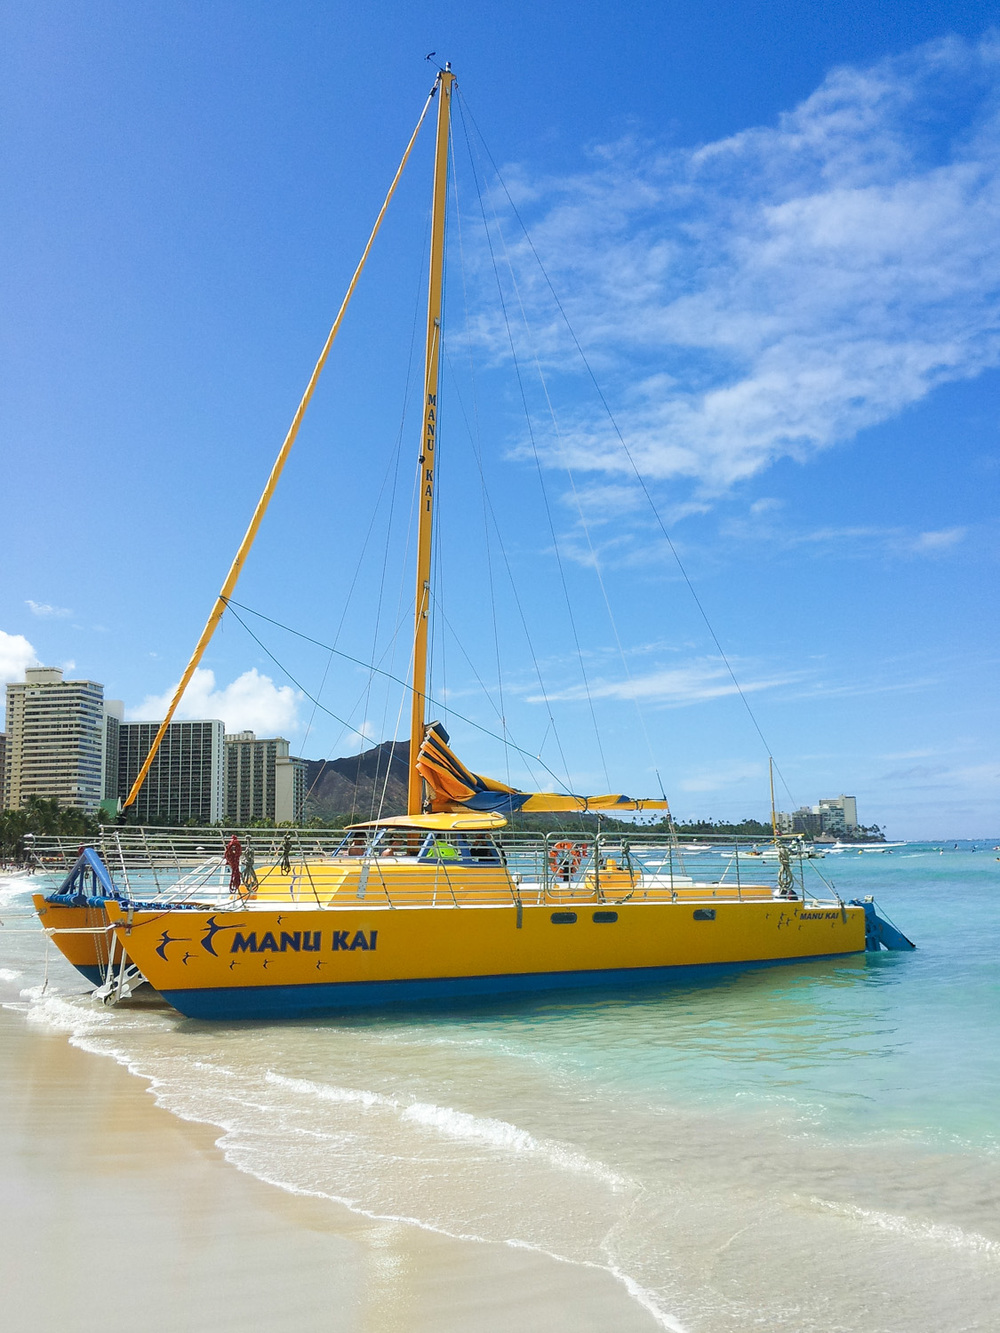 Christian-Schaffer-Hawaii-Beach-Waikiki-Sailboat.jpg